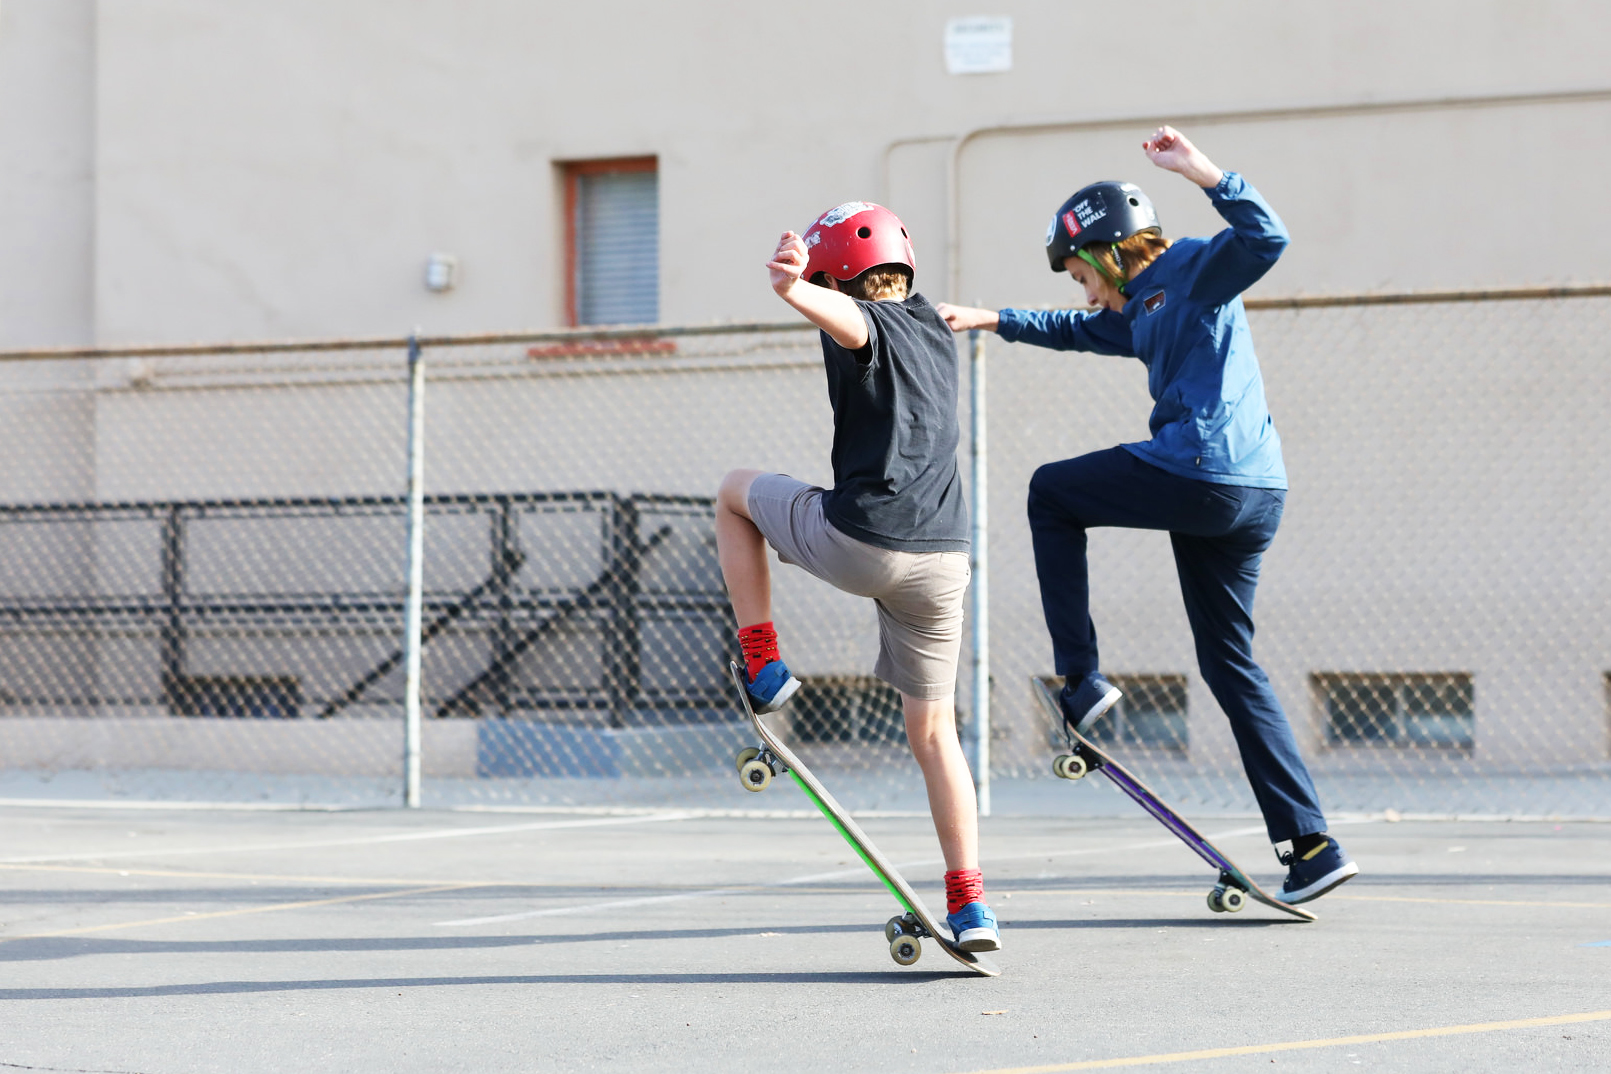 Two homeschooled boys from Compass Charter Schools on skateboards doing an ollie